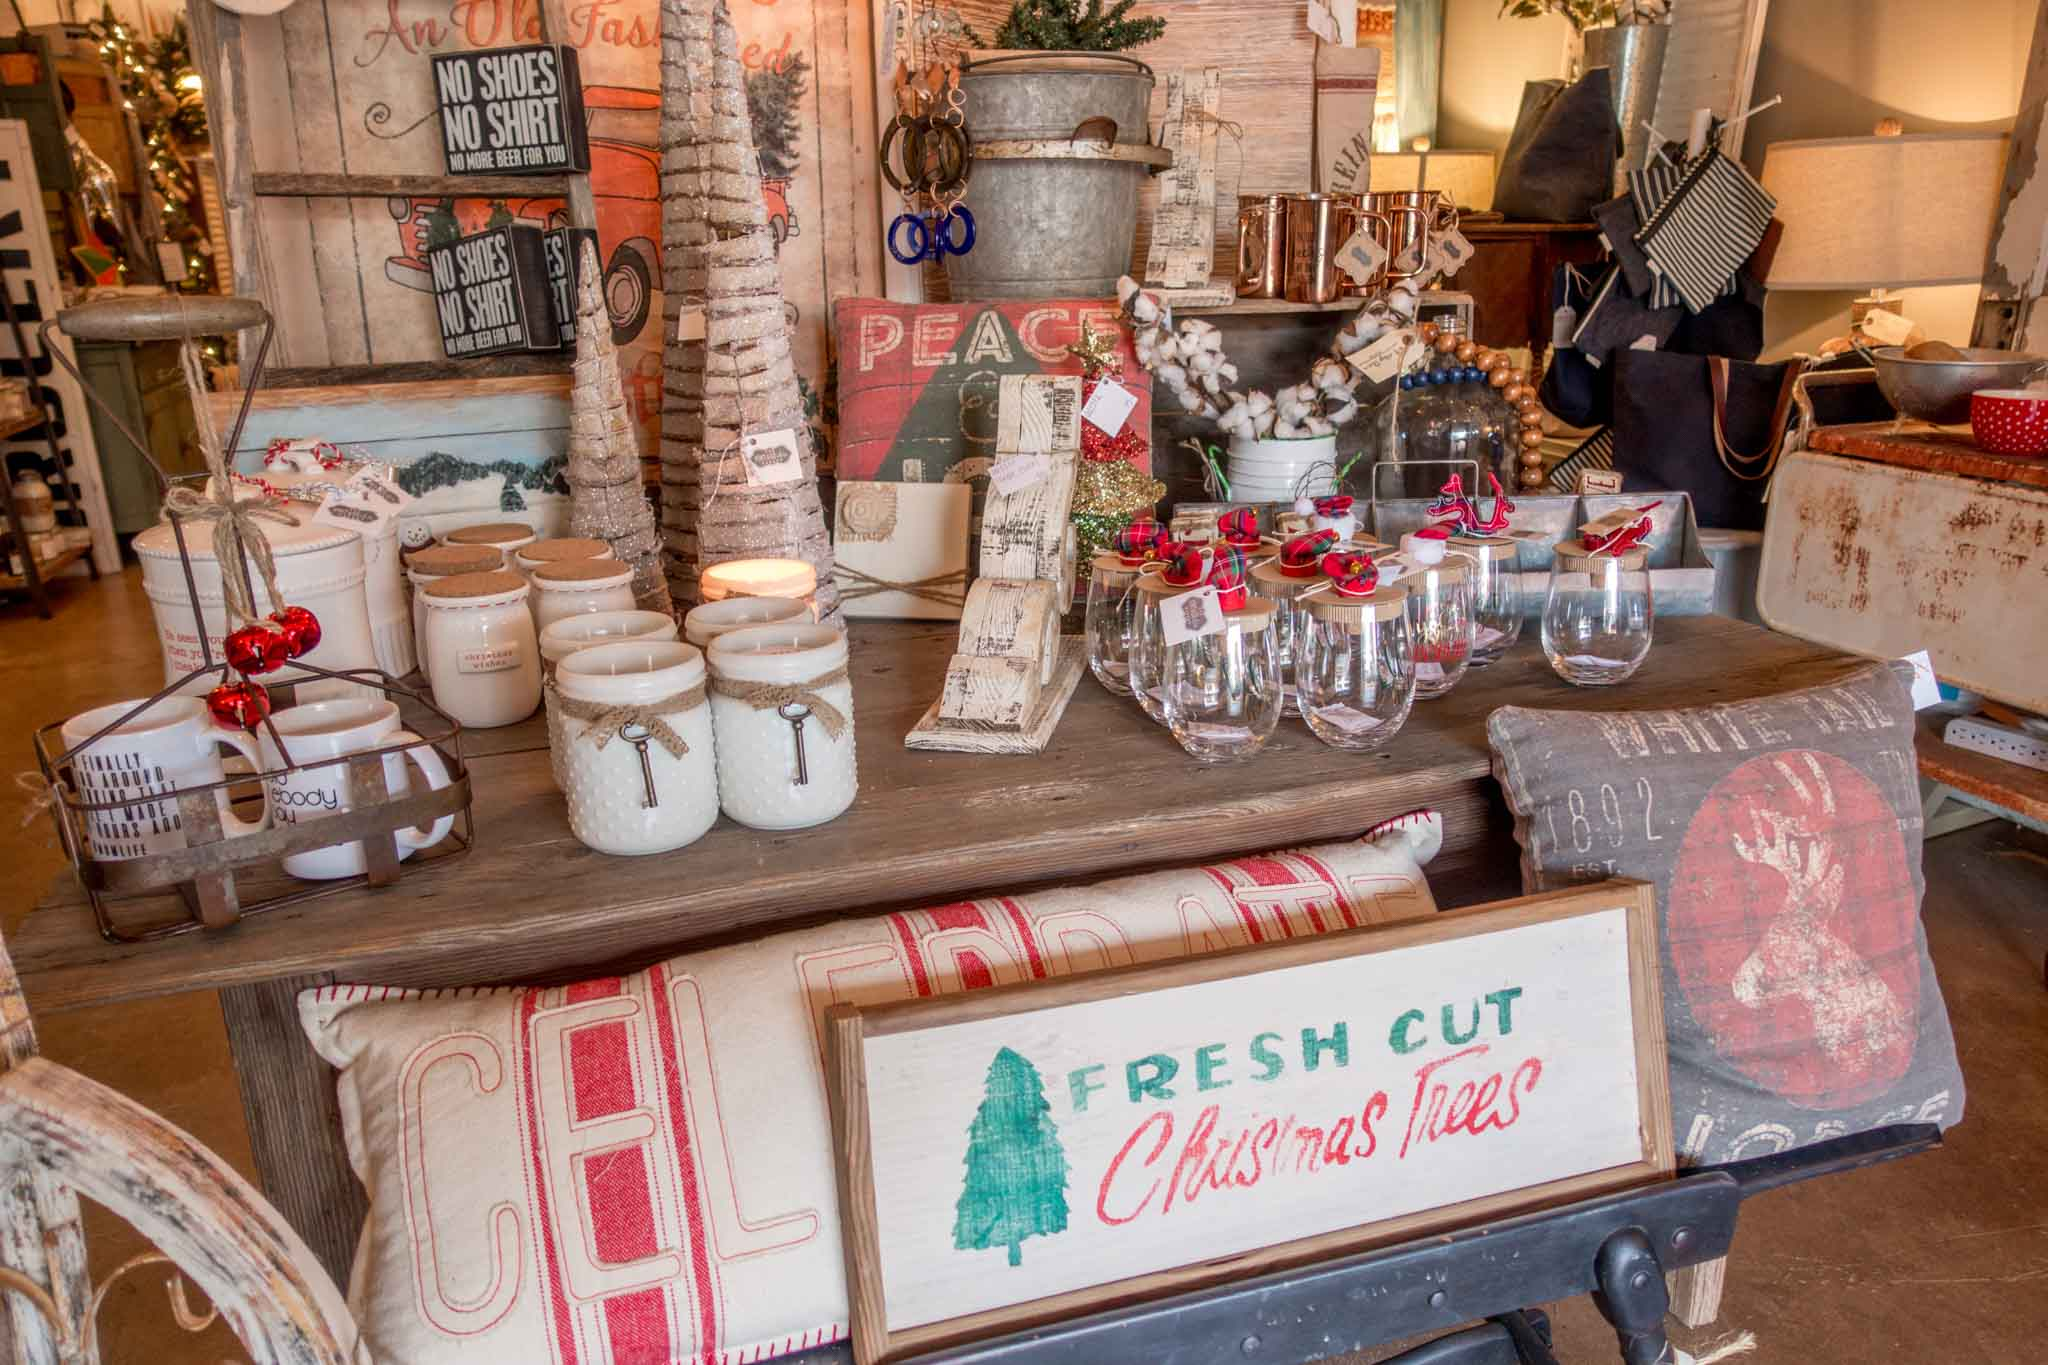 Mugs, pillows, and Christmas items for sale in a store